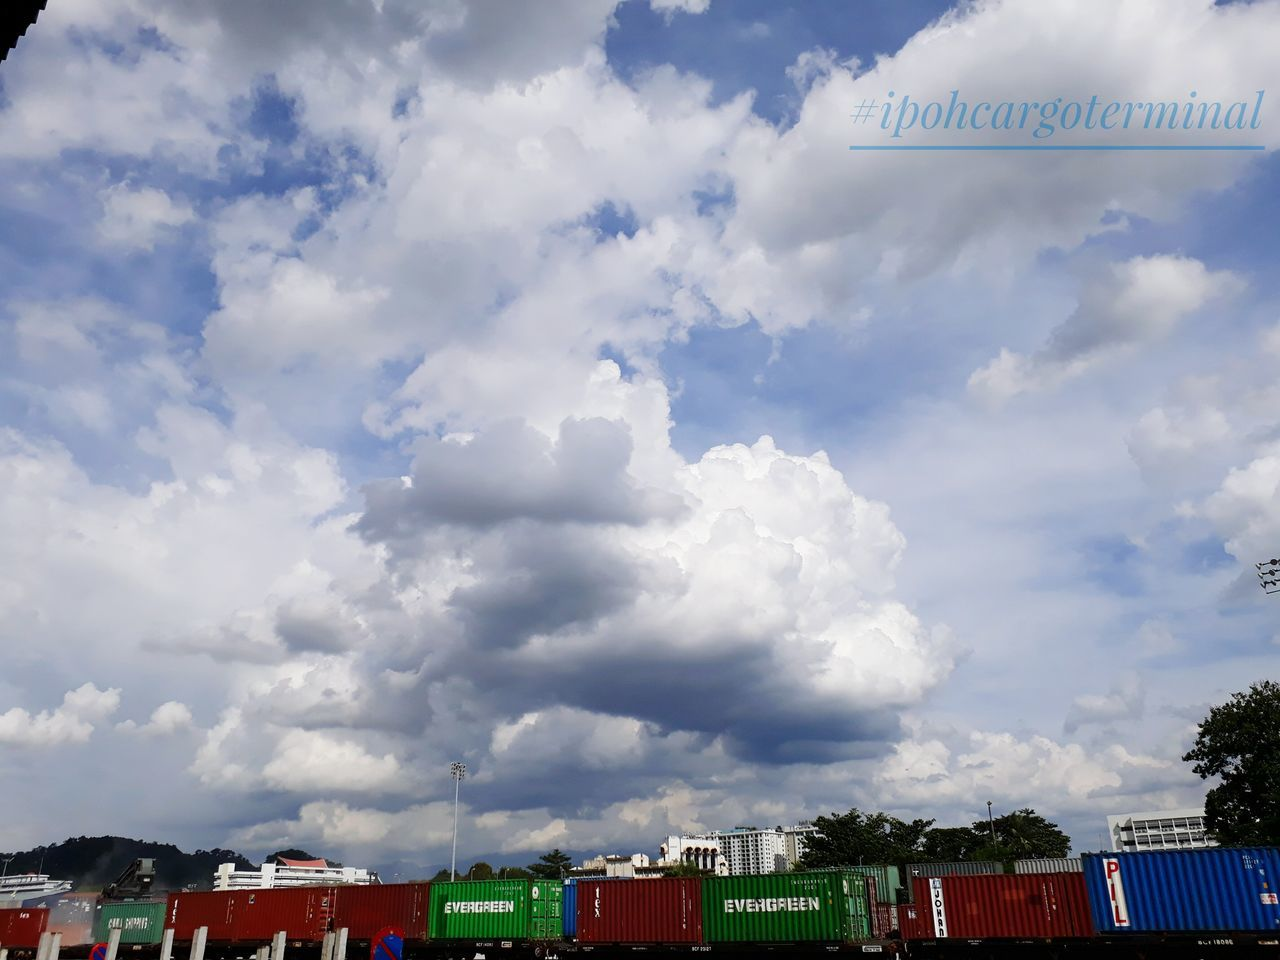 Cloud - Sky Business Finance And Industry Sky No People Outdoors GalaxyJ7Prime Transportation Stack Freight Train Freight Transportation Lokomotive Environment Cargo Container Industry Day